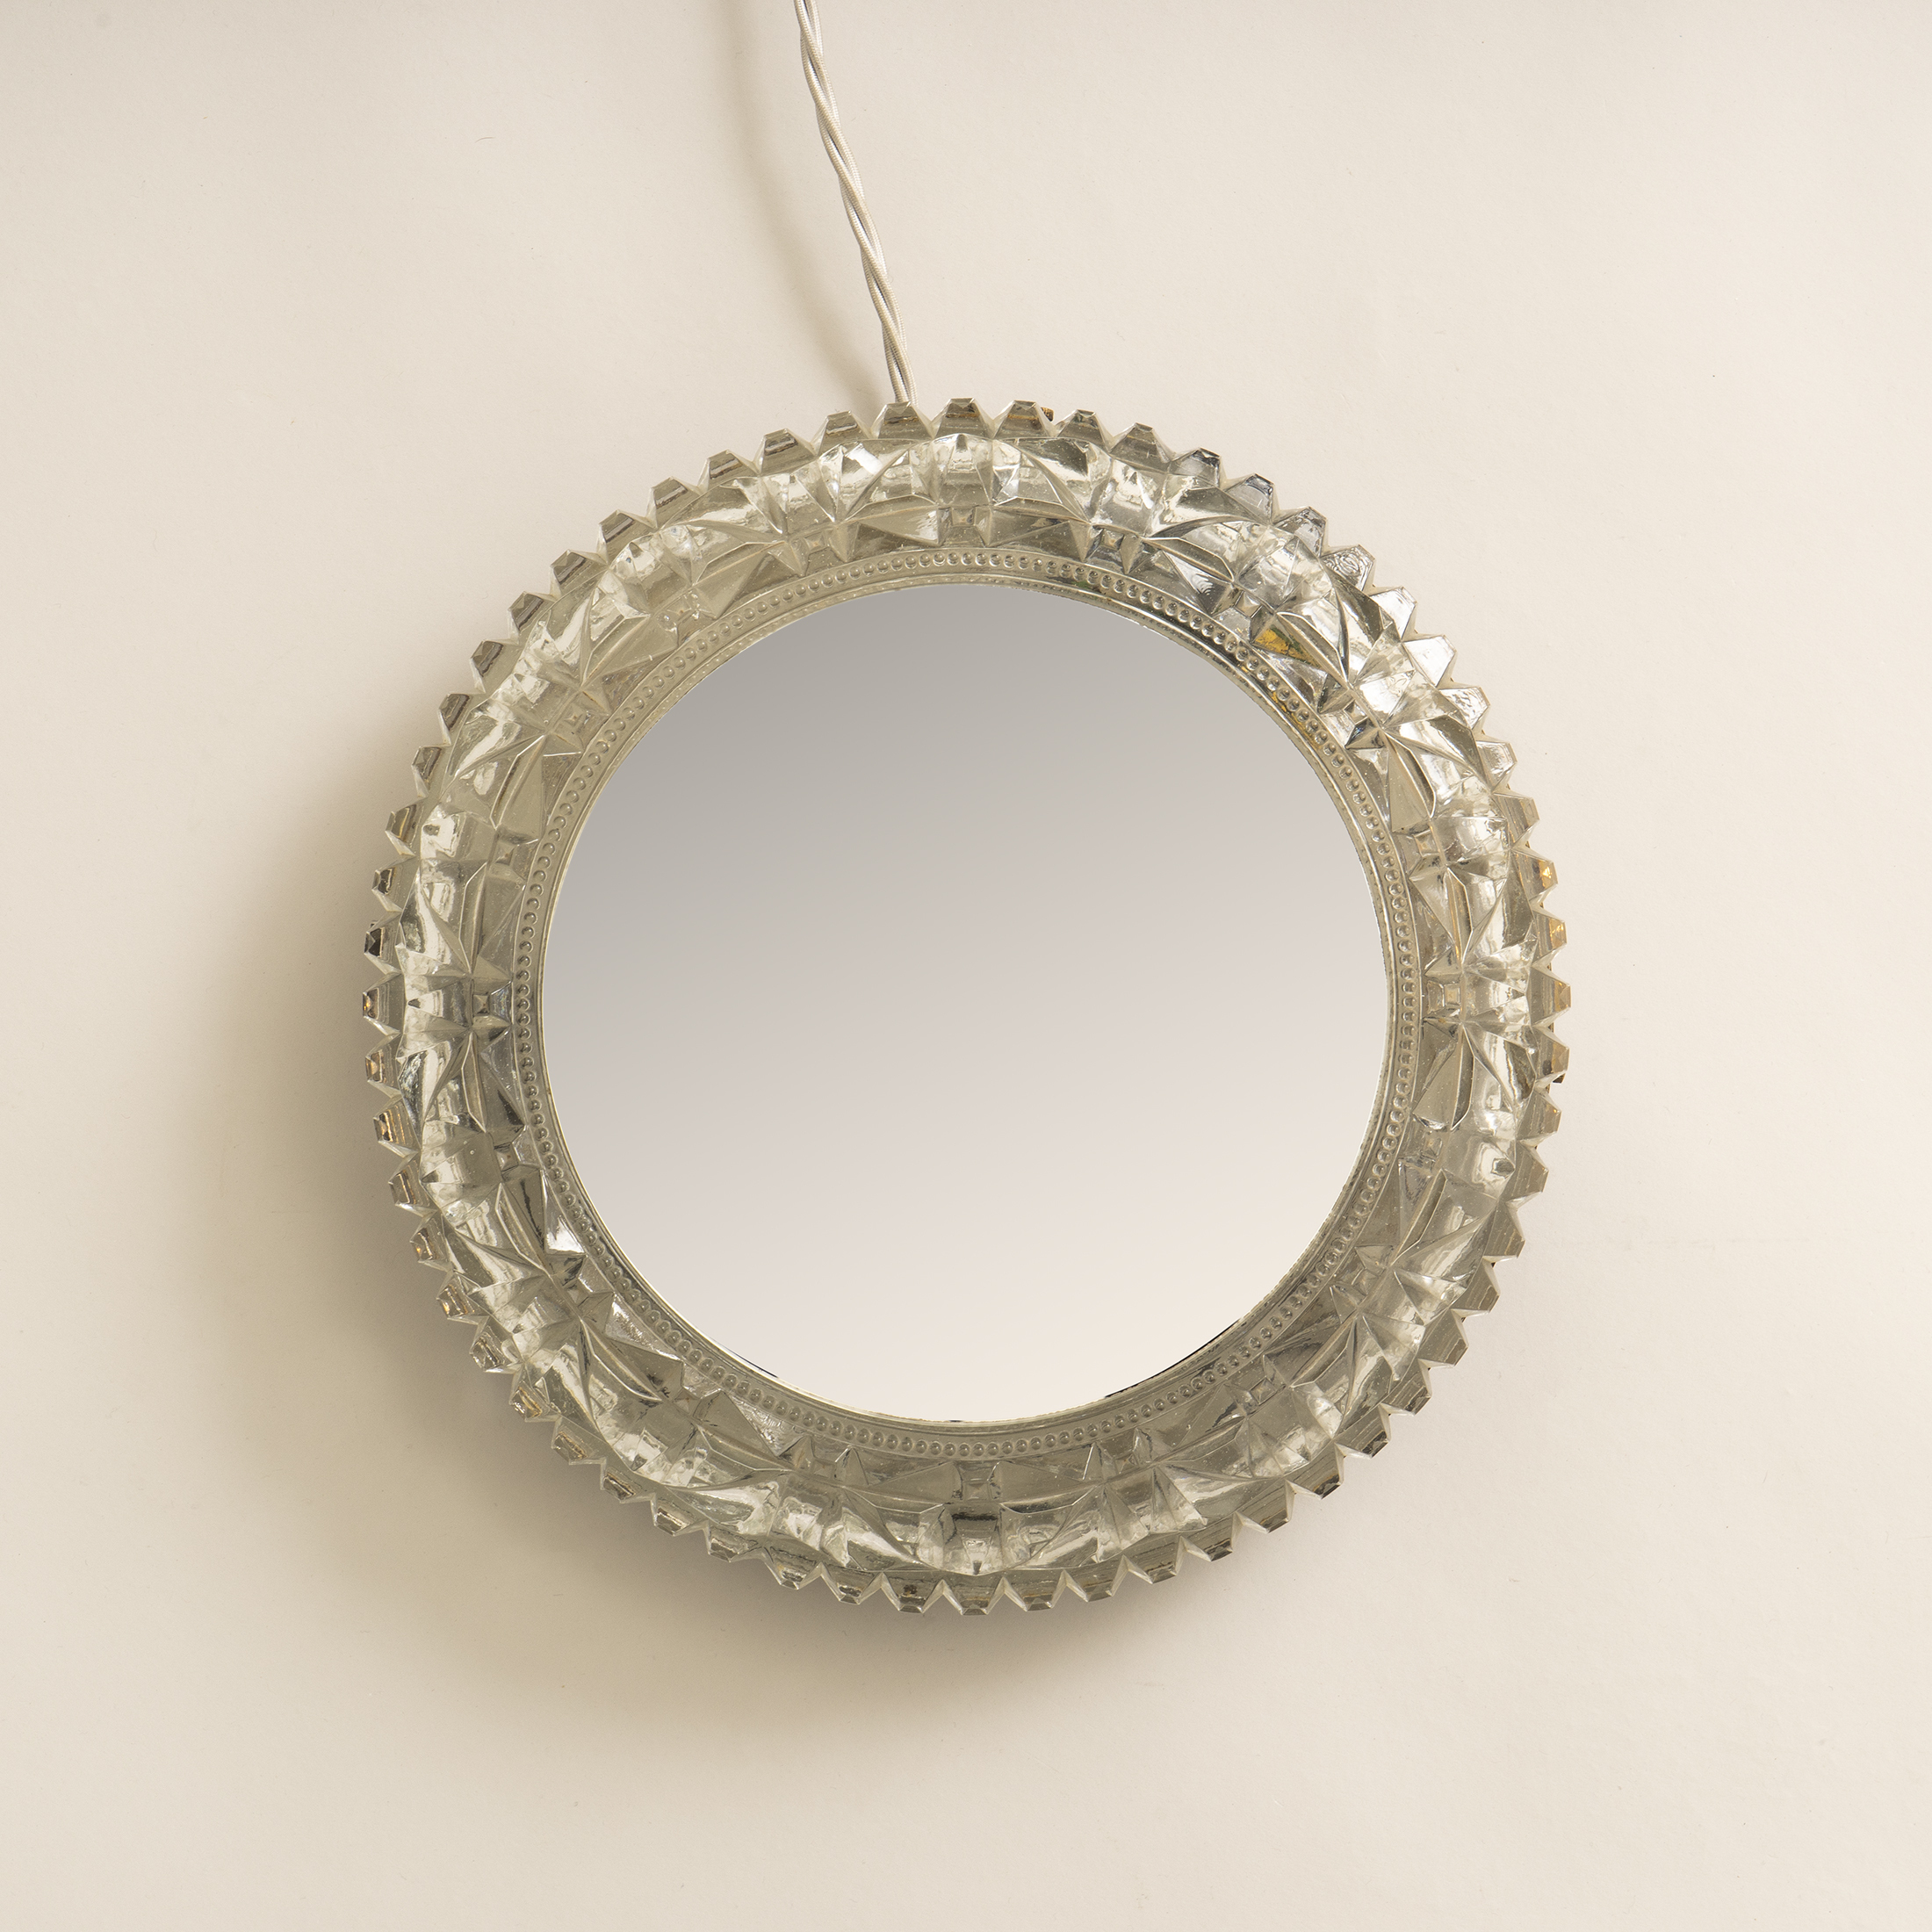 The image for Circular Backlit Mirror 0384